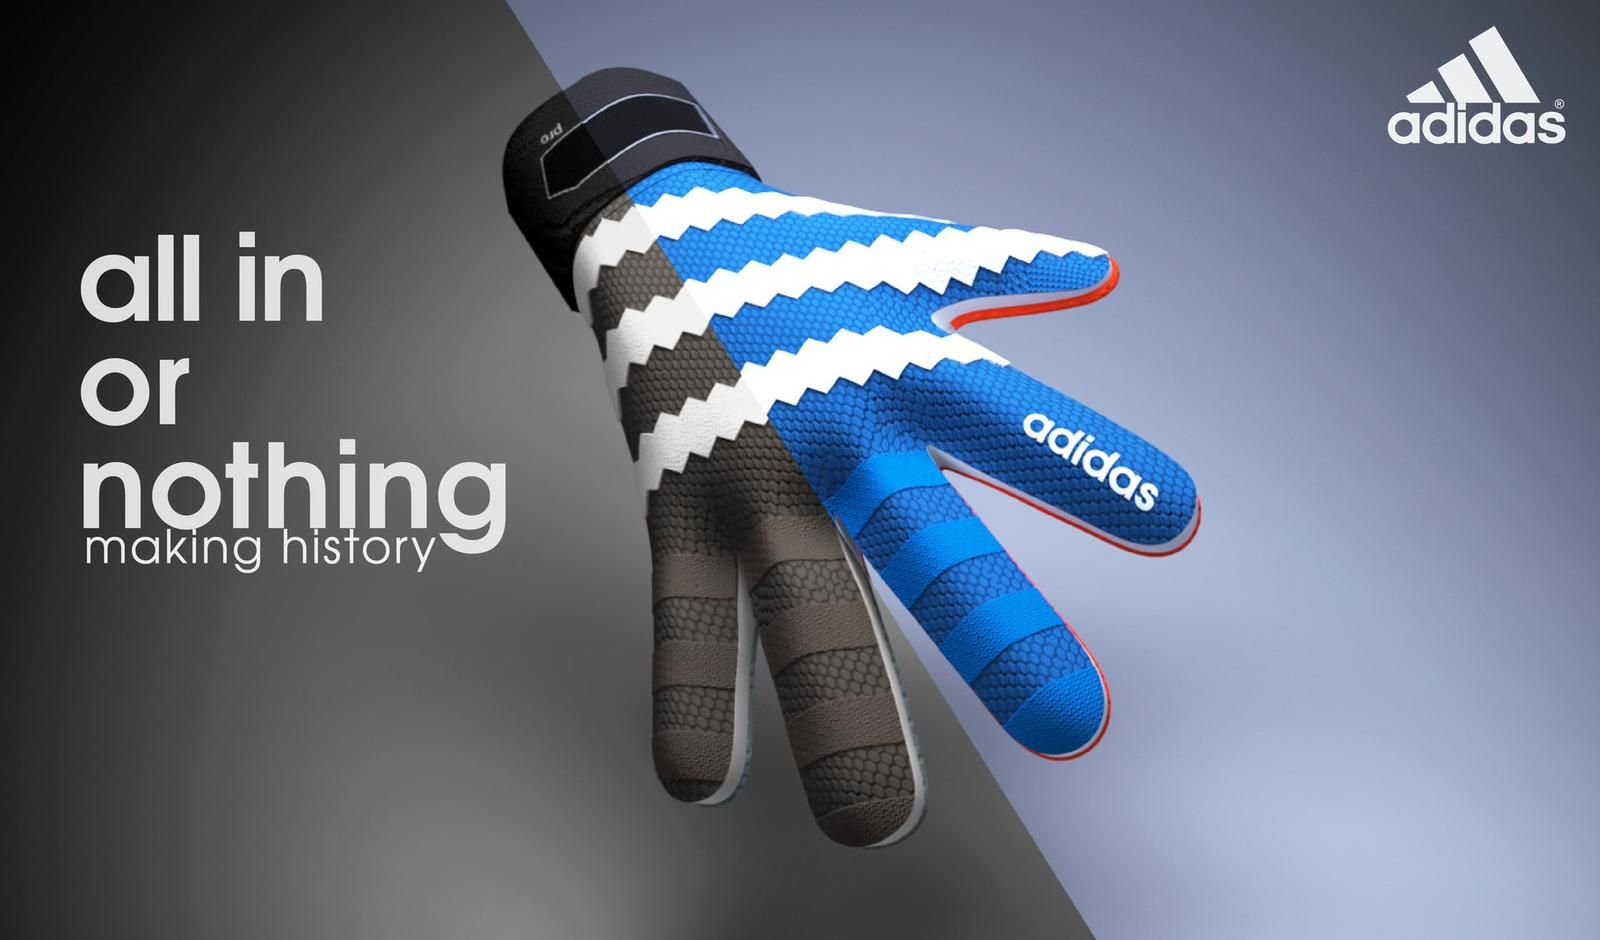 22f38a32184 LEAKED  Is This Adidas  Response to the Nike Vapor Touch Elite Goalkeeper  Gloves  - Footy Headlines